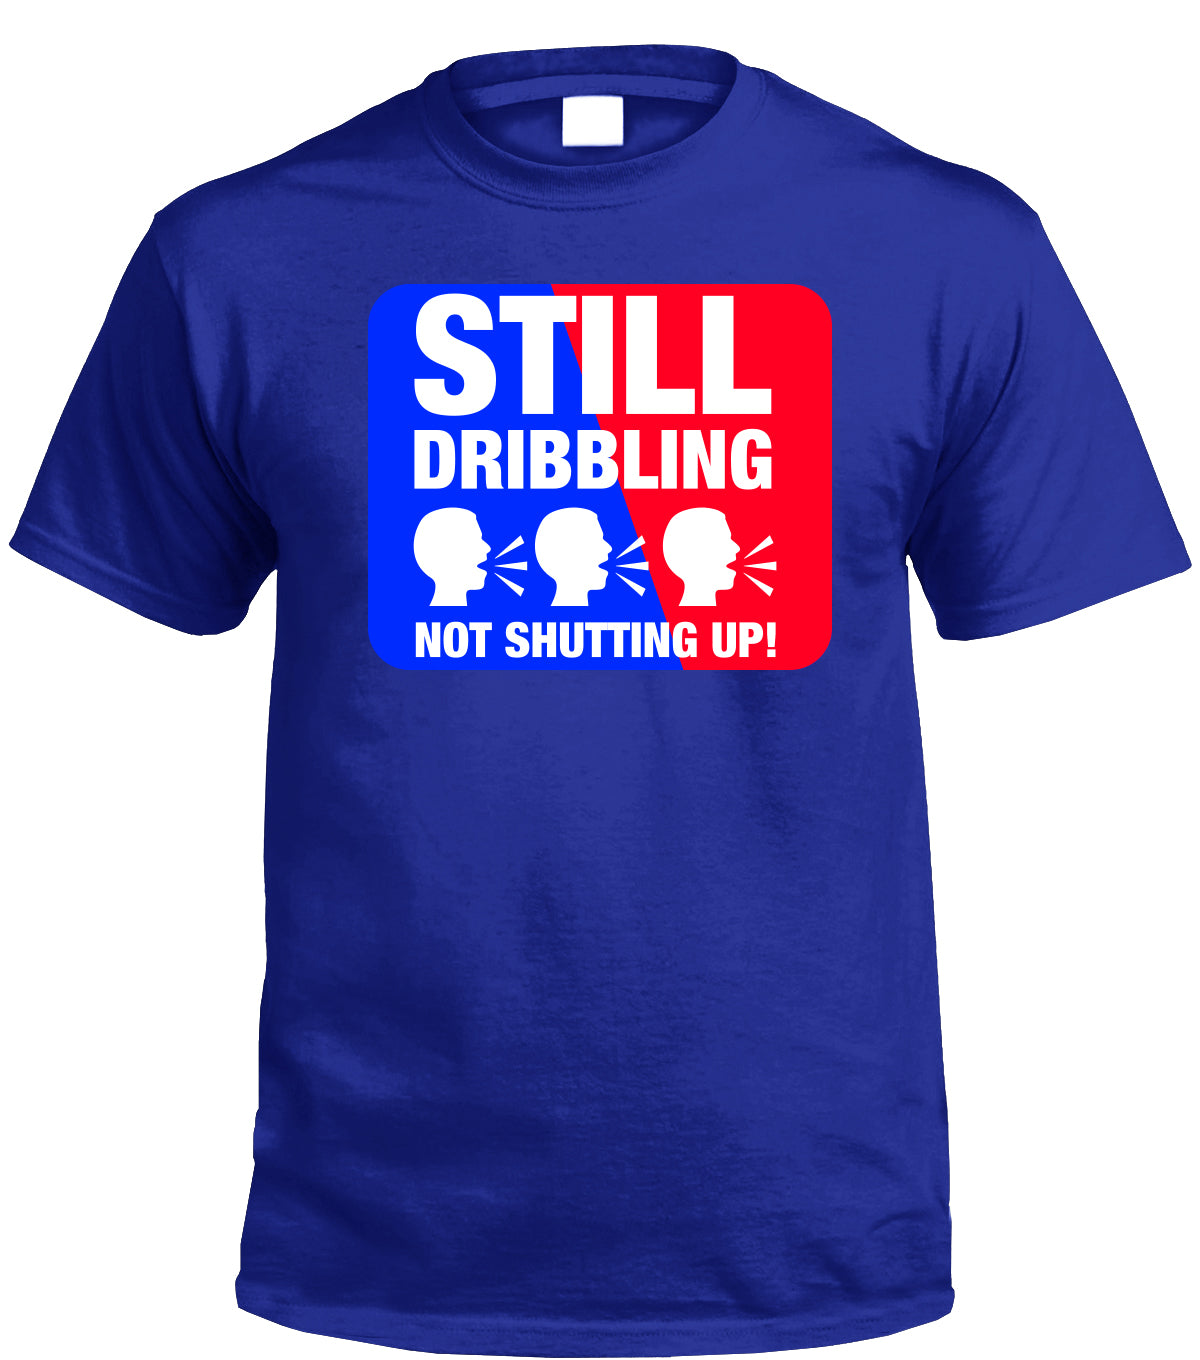 STILL DRIBBLING NOT SHUTTING UP TEE (ROYAL) - REP CULTURE